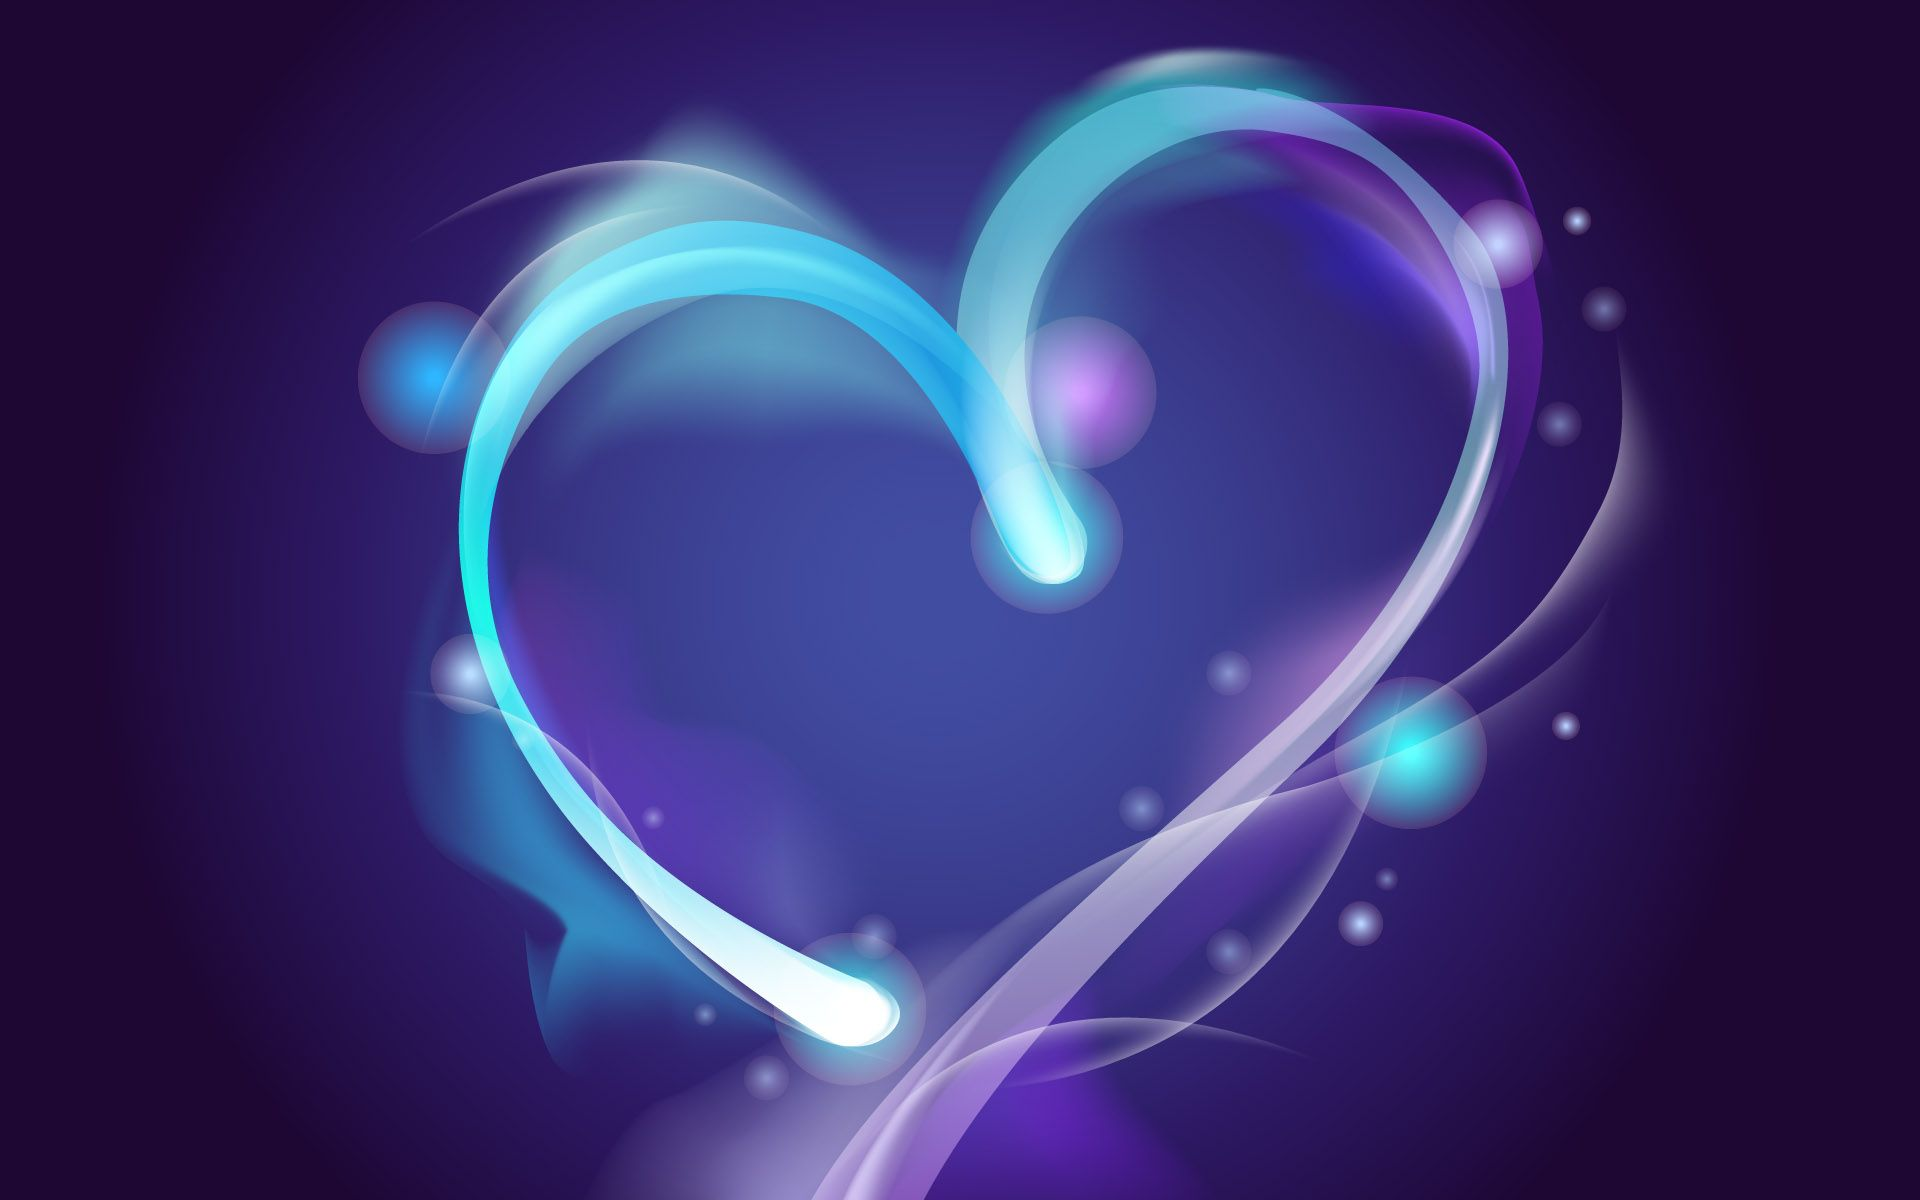 Colorful Amazing High Quality Background Picture Heart Wallpaper